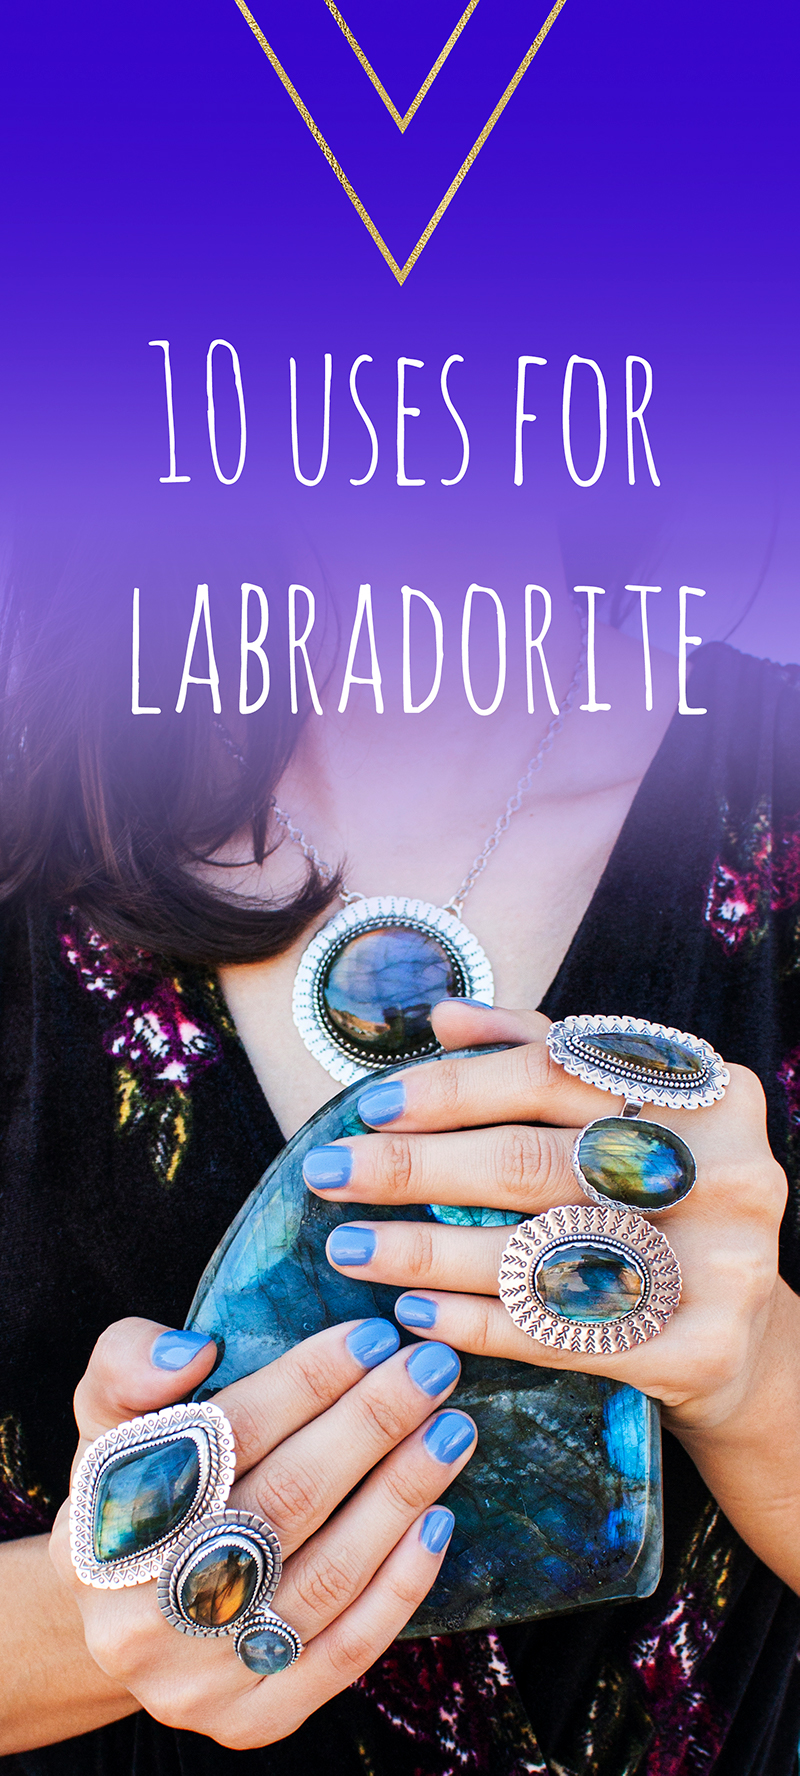 Pic2-10-uses-and-meanings-for-labradorite